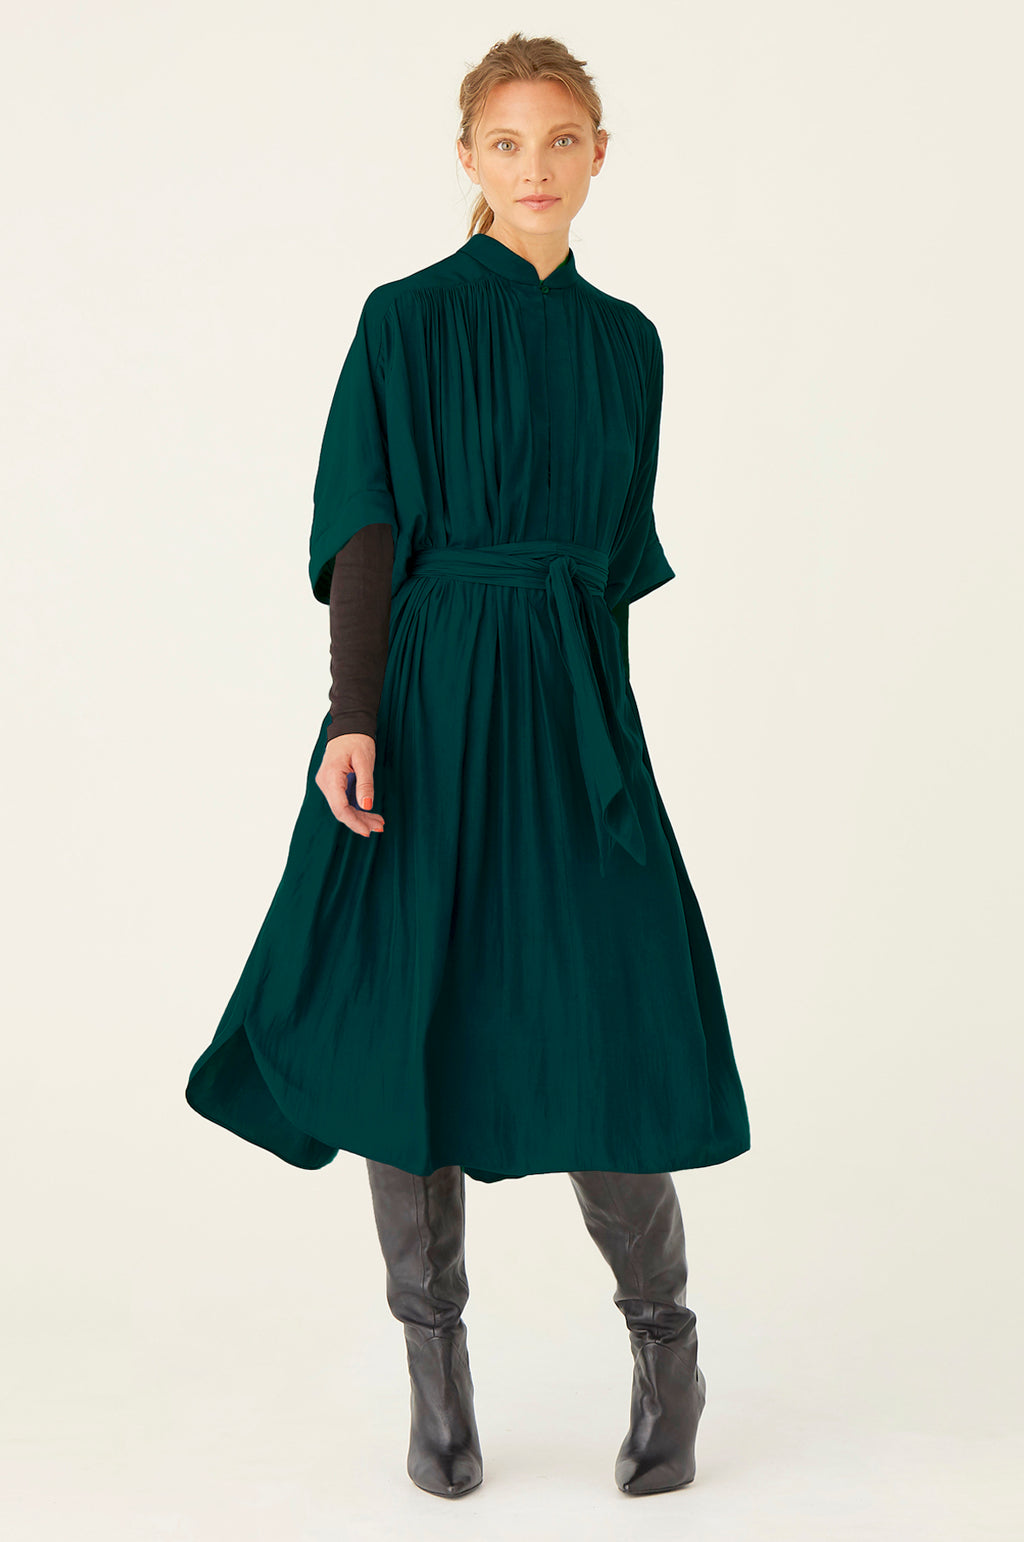 The One Dress Project 'Evergreen'